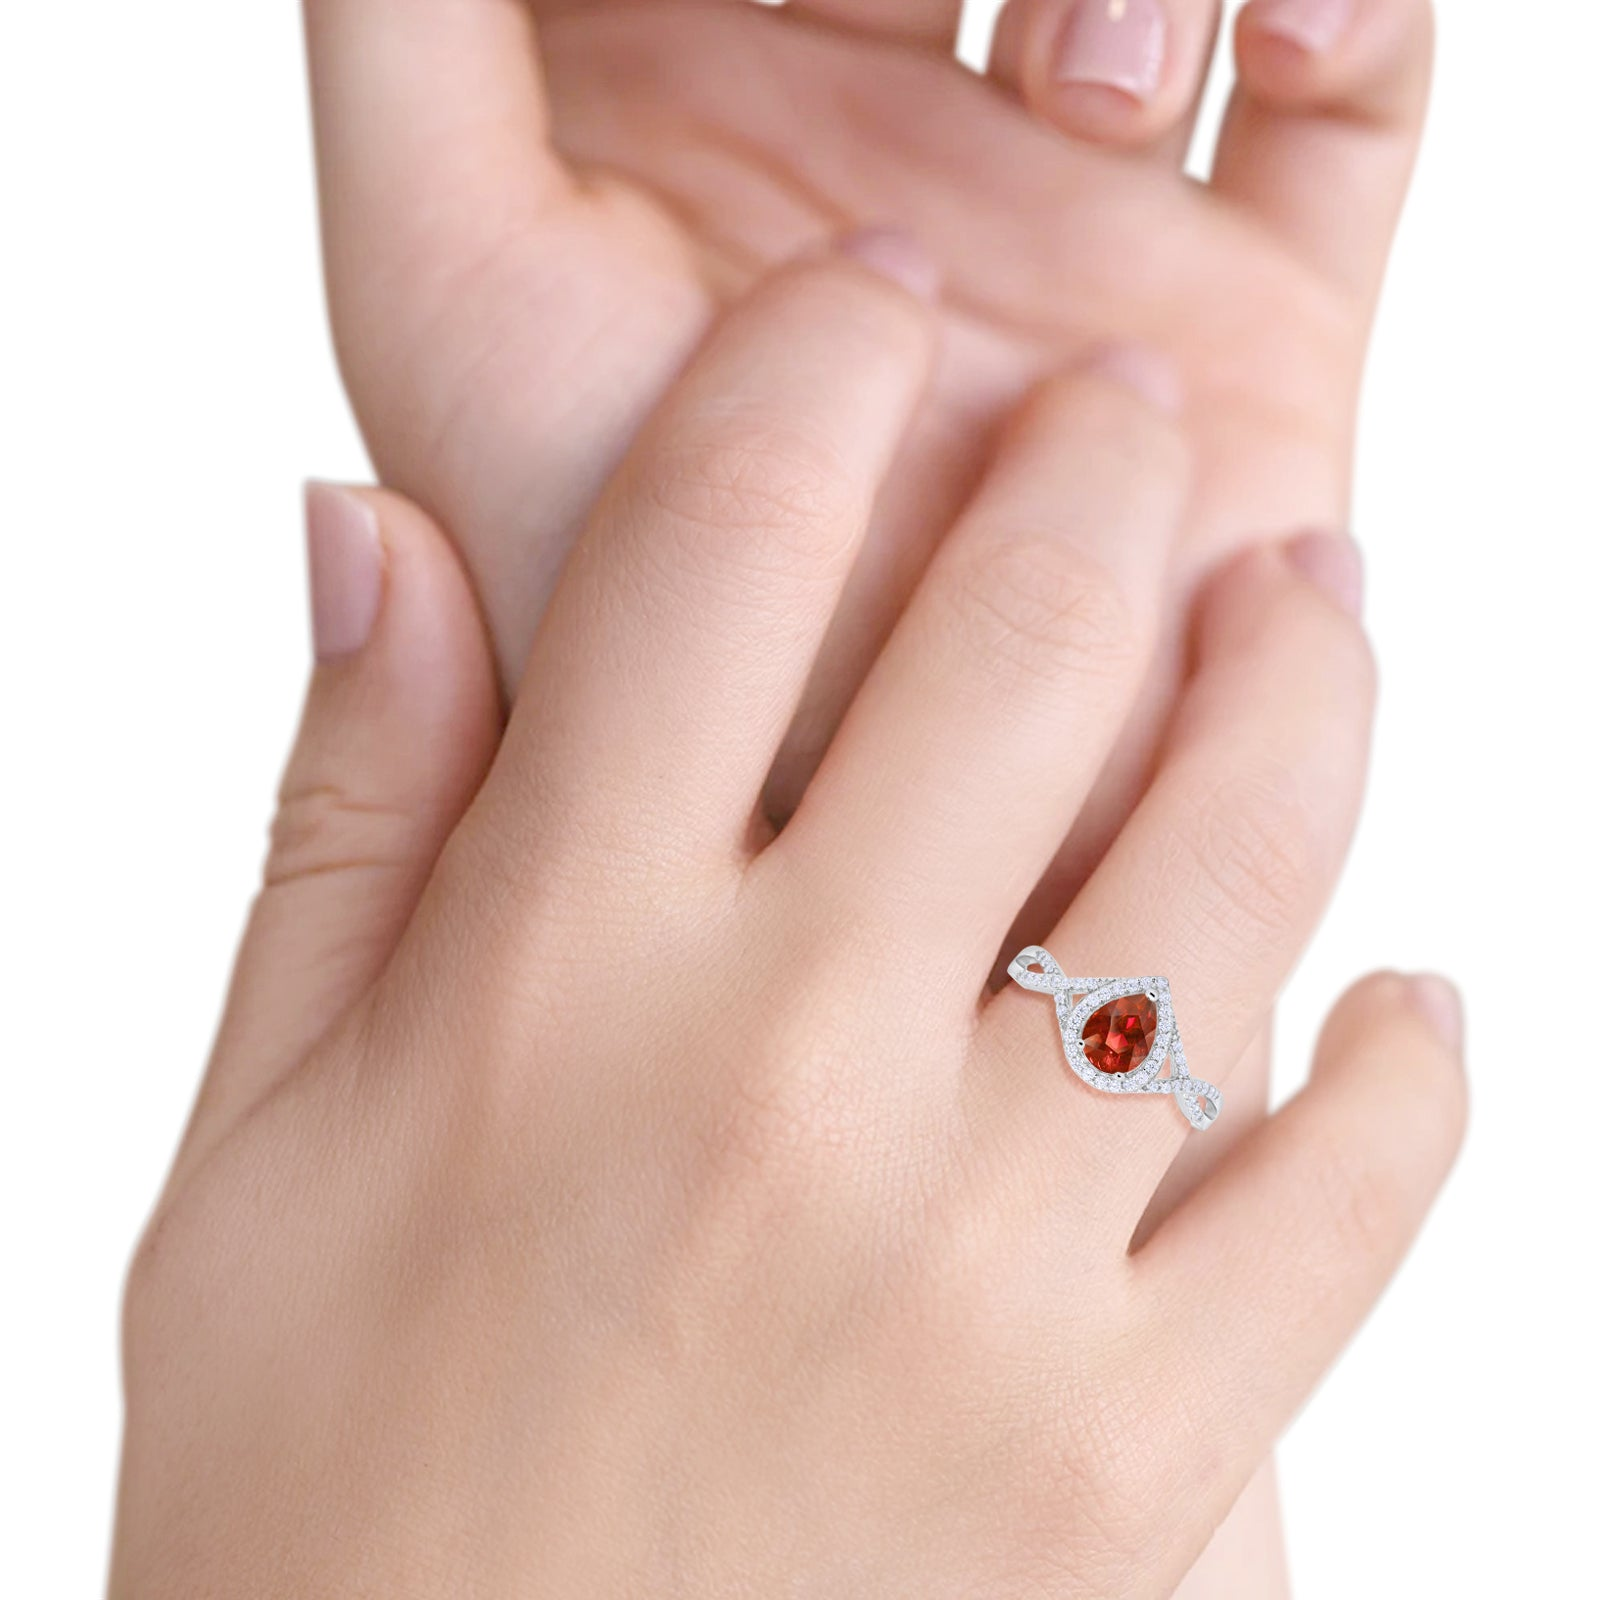 Teardrop Wedding Promise Ring Infinity Round Simulated Garnet CZ 925 Sterling Silver